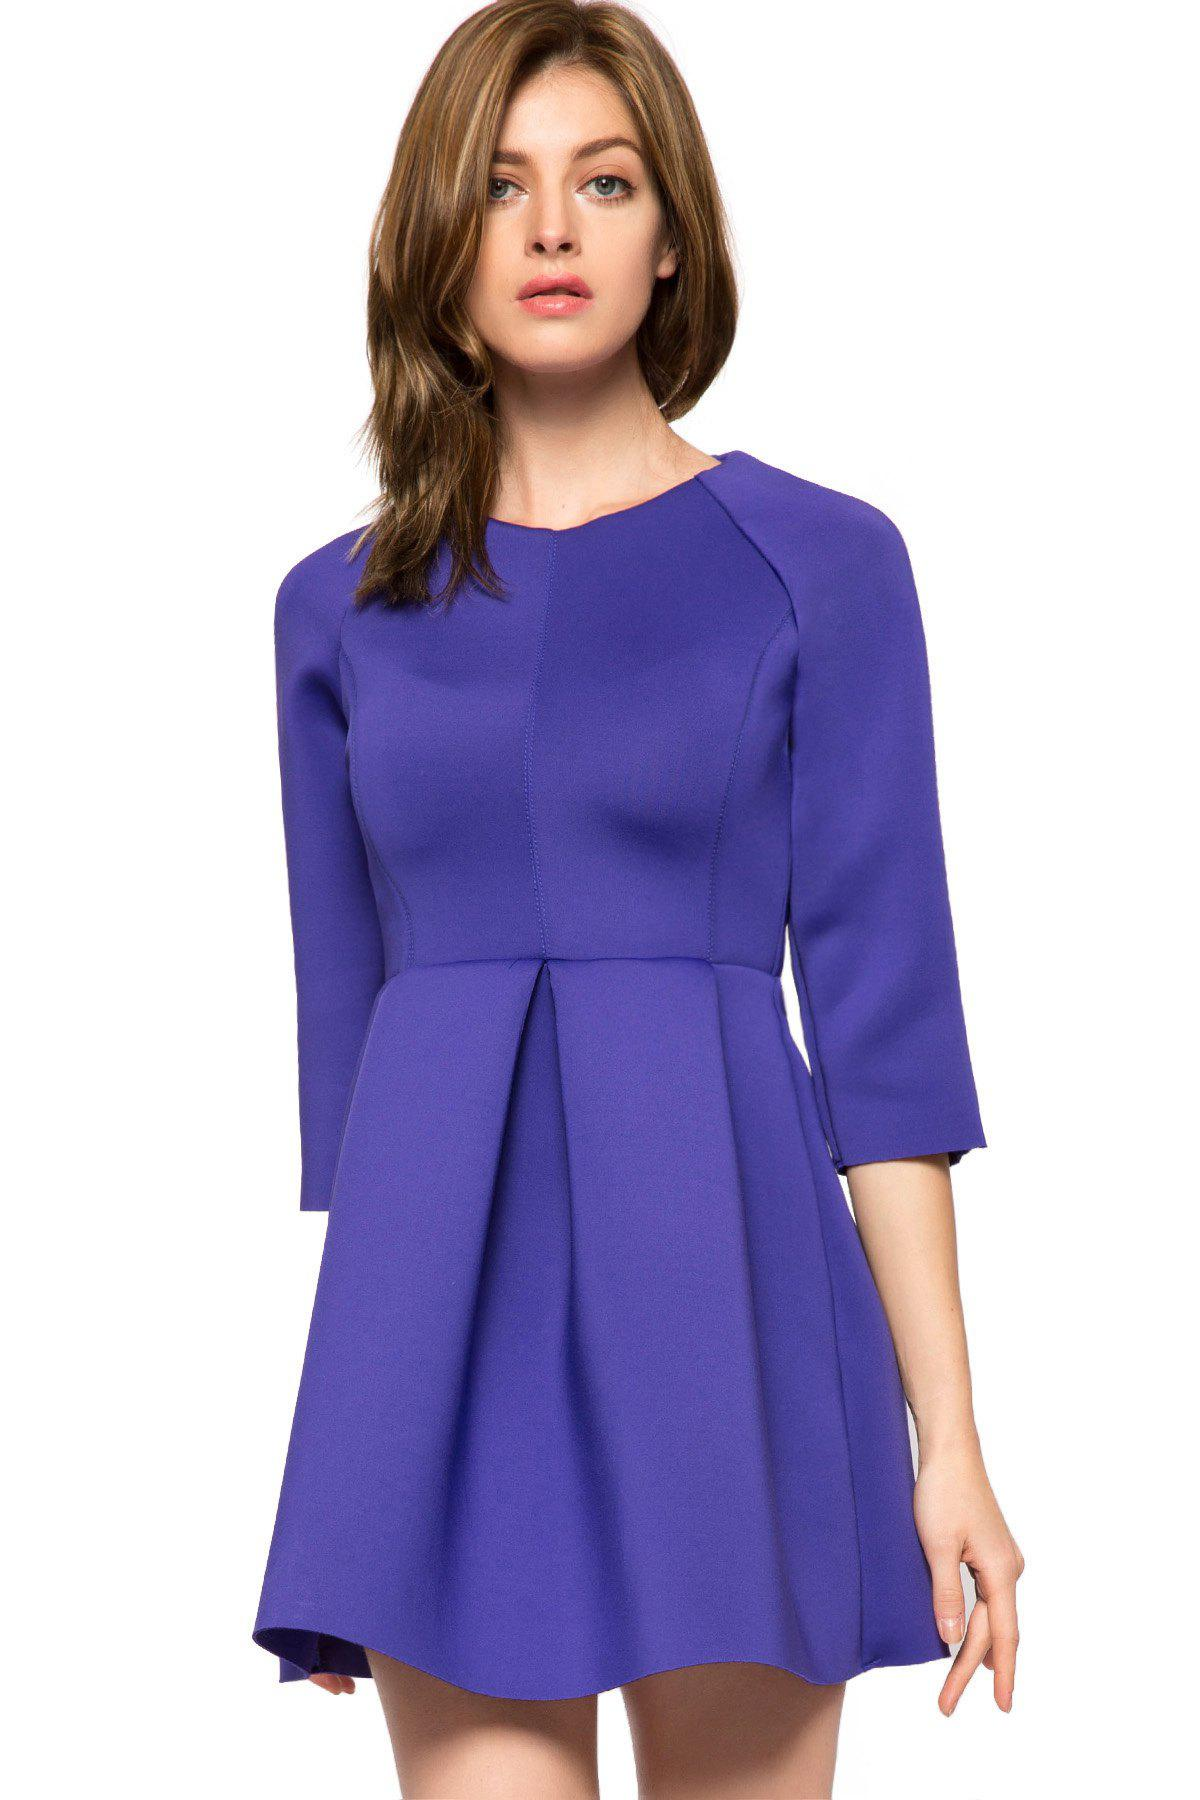 Shops Trendy Style Round Collar 3/4 Sleeve Solid Color Pleated A-Line Women's Dress